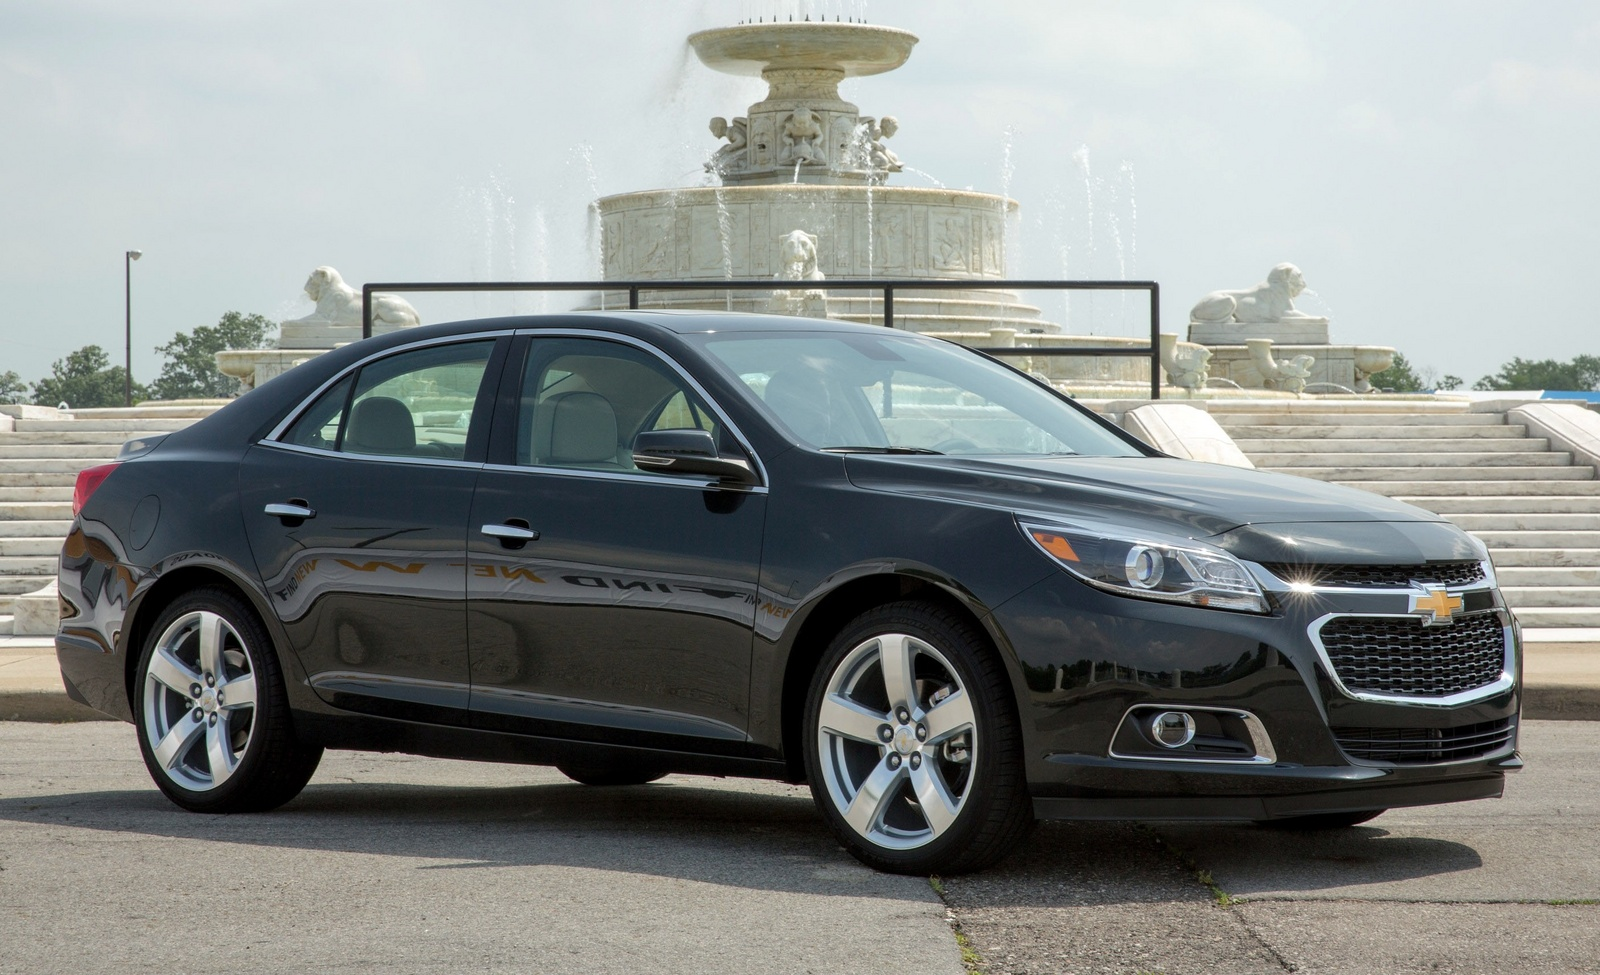 Malibu 2014 chevrolet malibu ltz : 2014 Chevrolet Malibu – pictures, information and specs - Auto ...